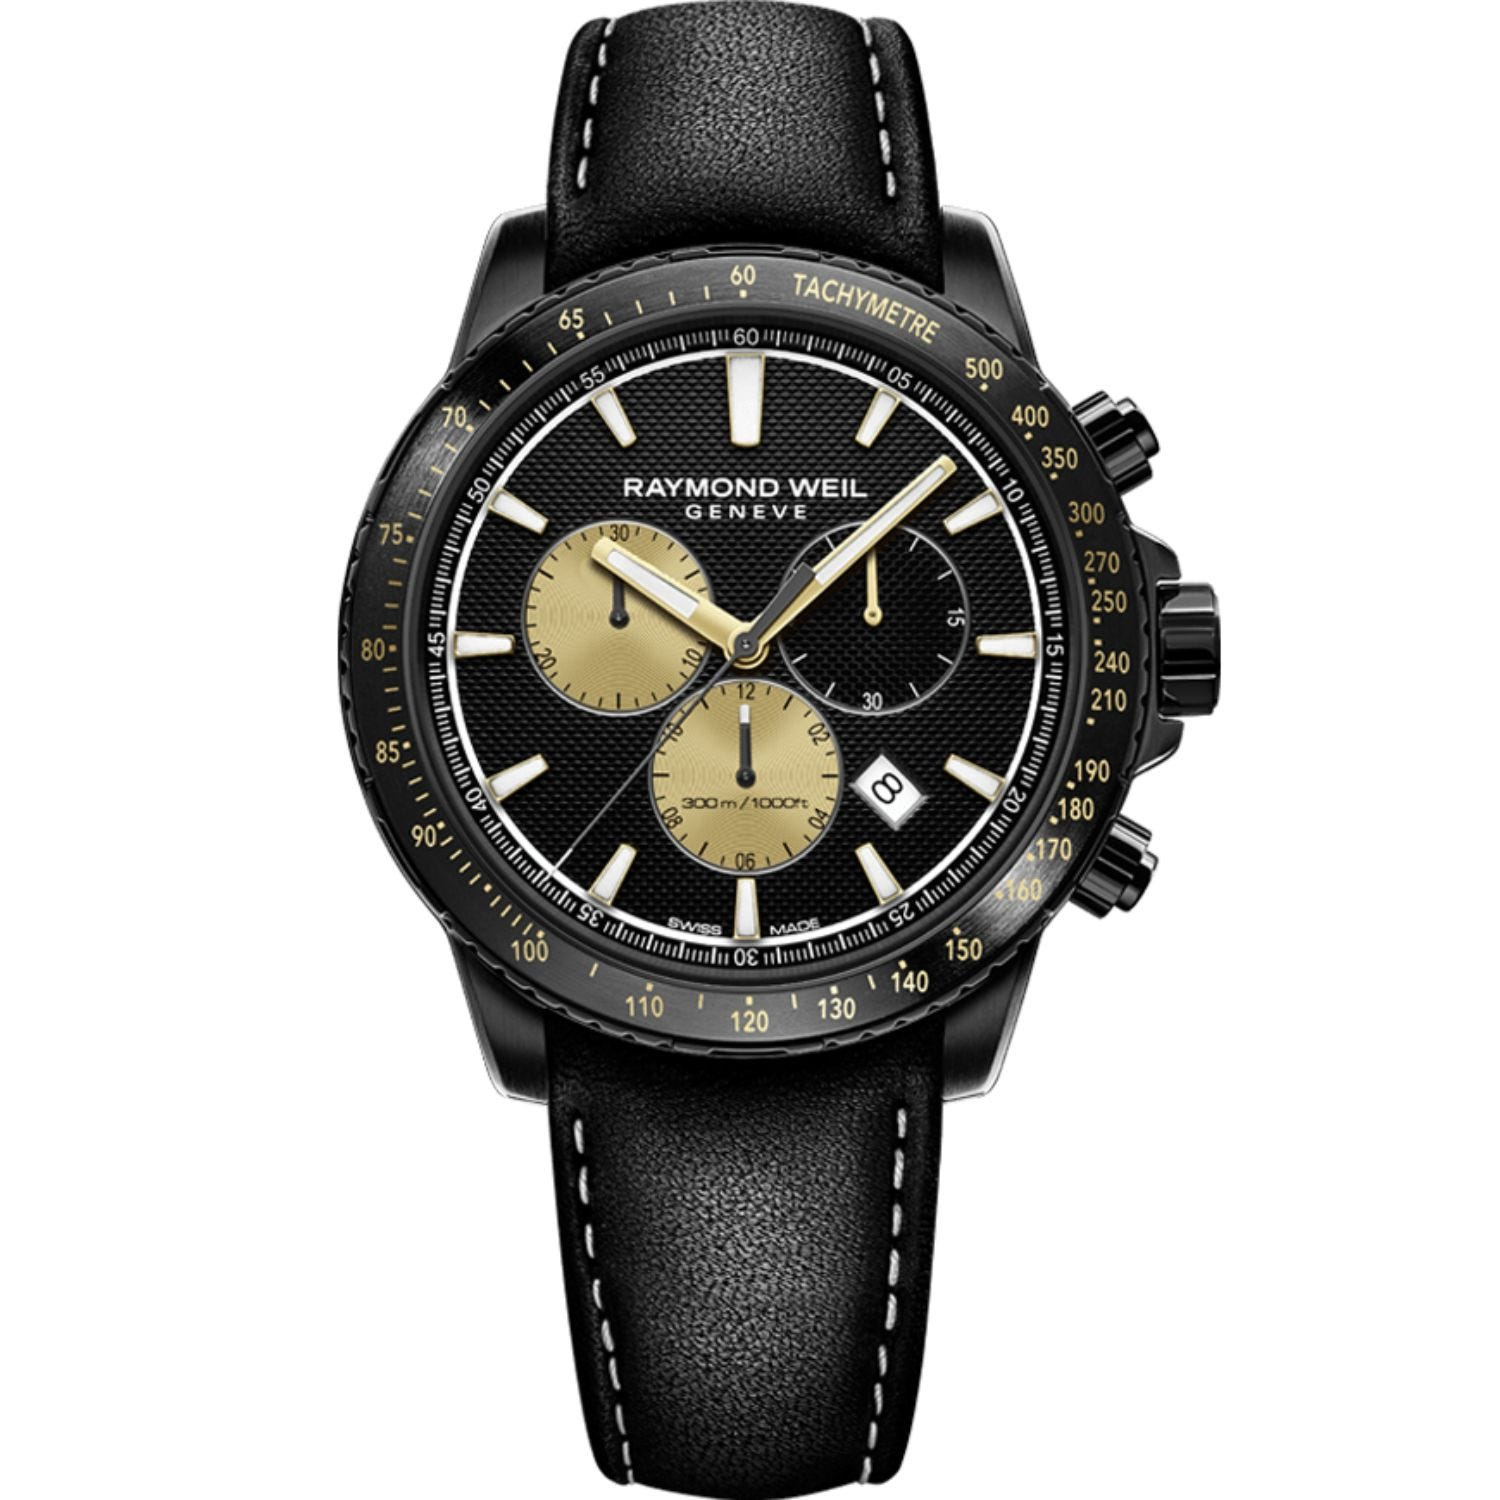 Raymond Weil Limited Edition Marshall 43mm Black PVD Chrono Black Strap Watch